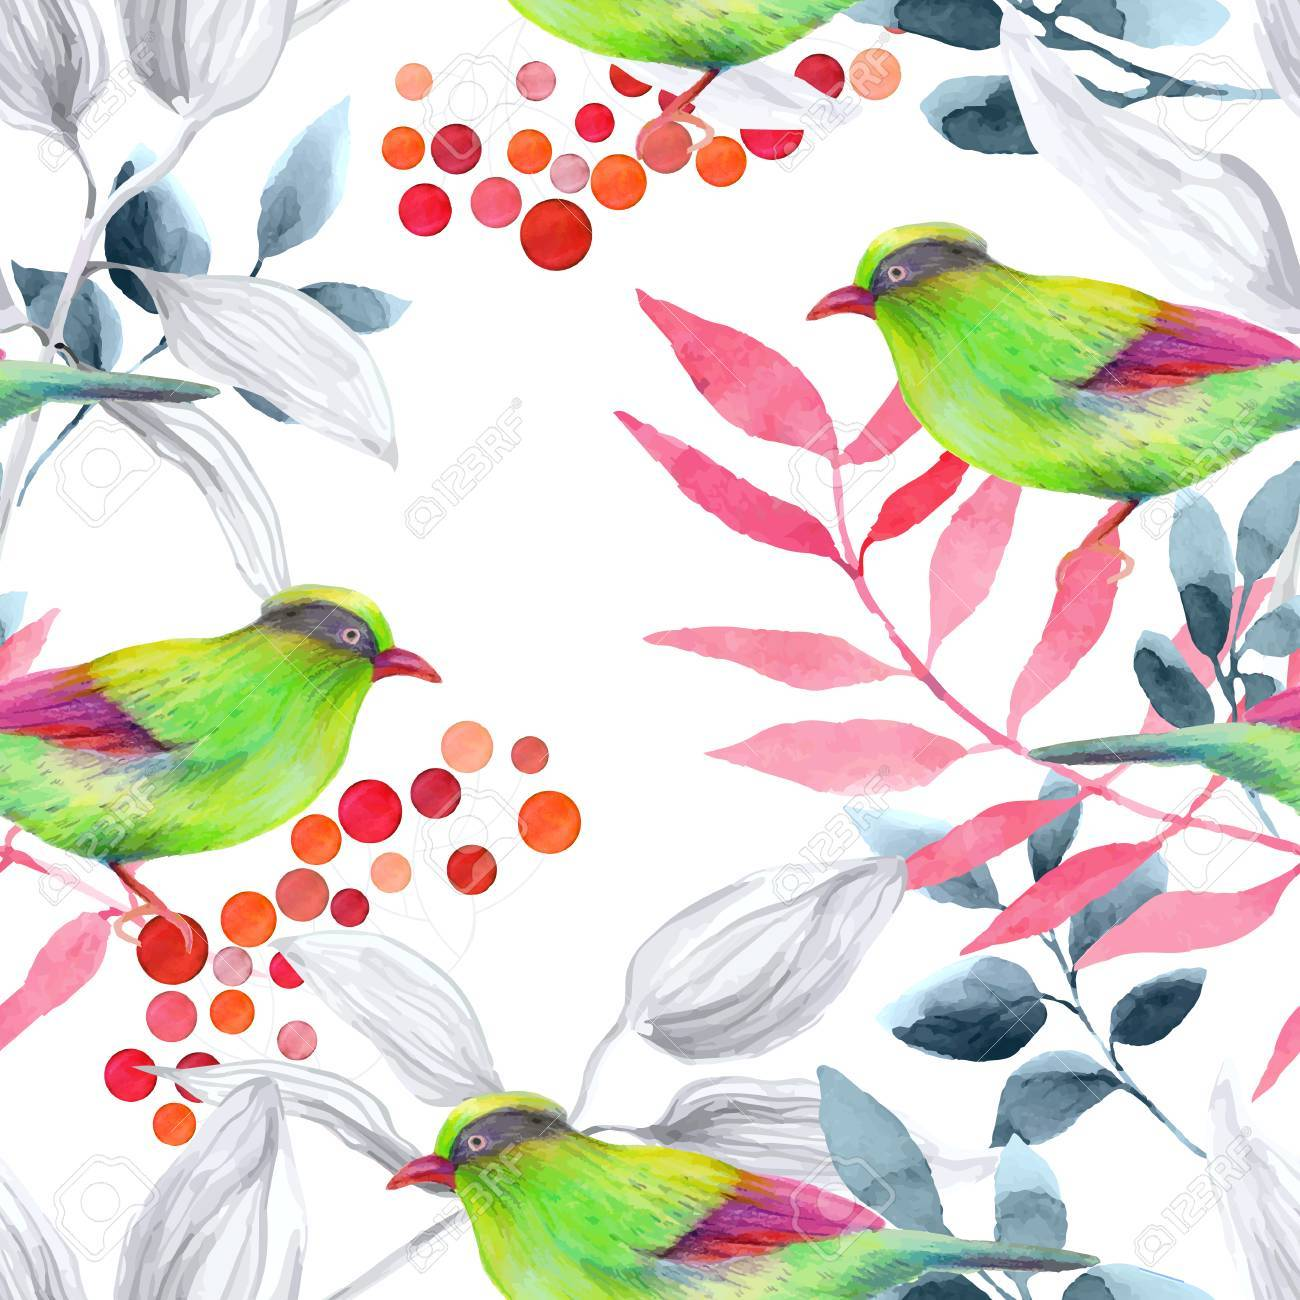 Watercolor seamless pattern with birds. - 43554384